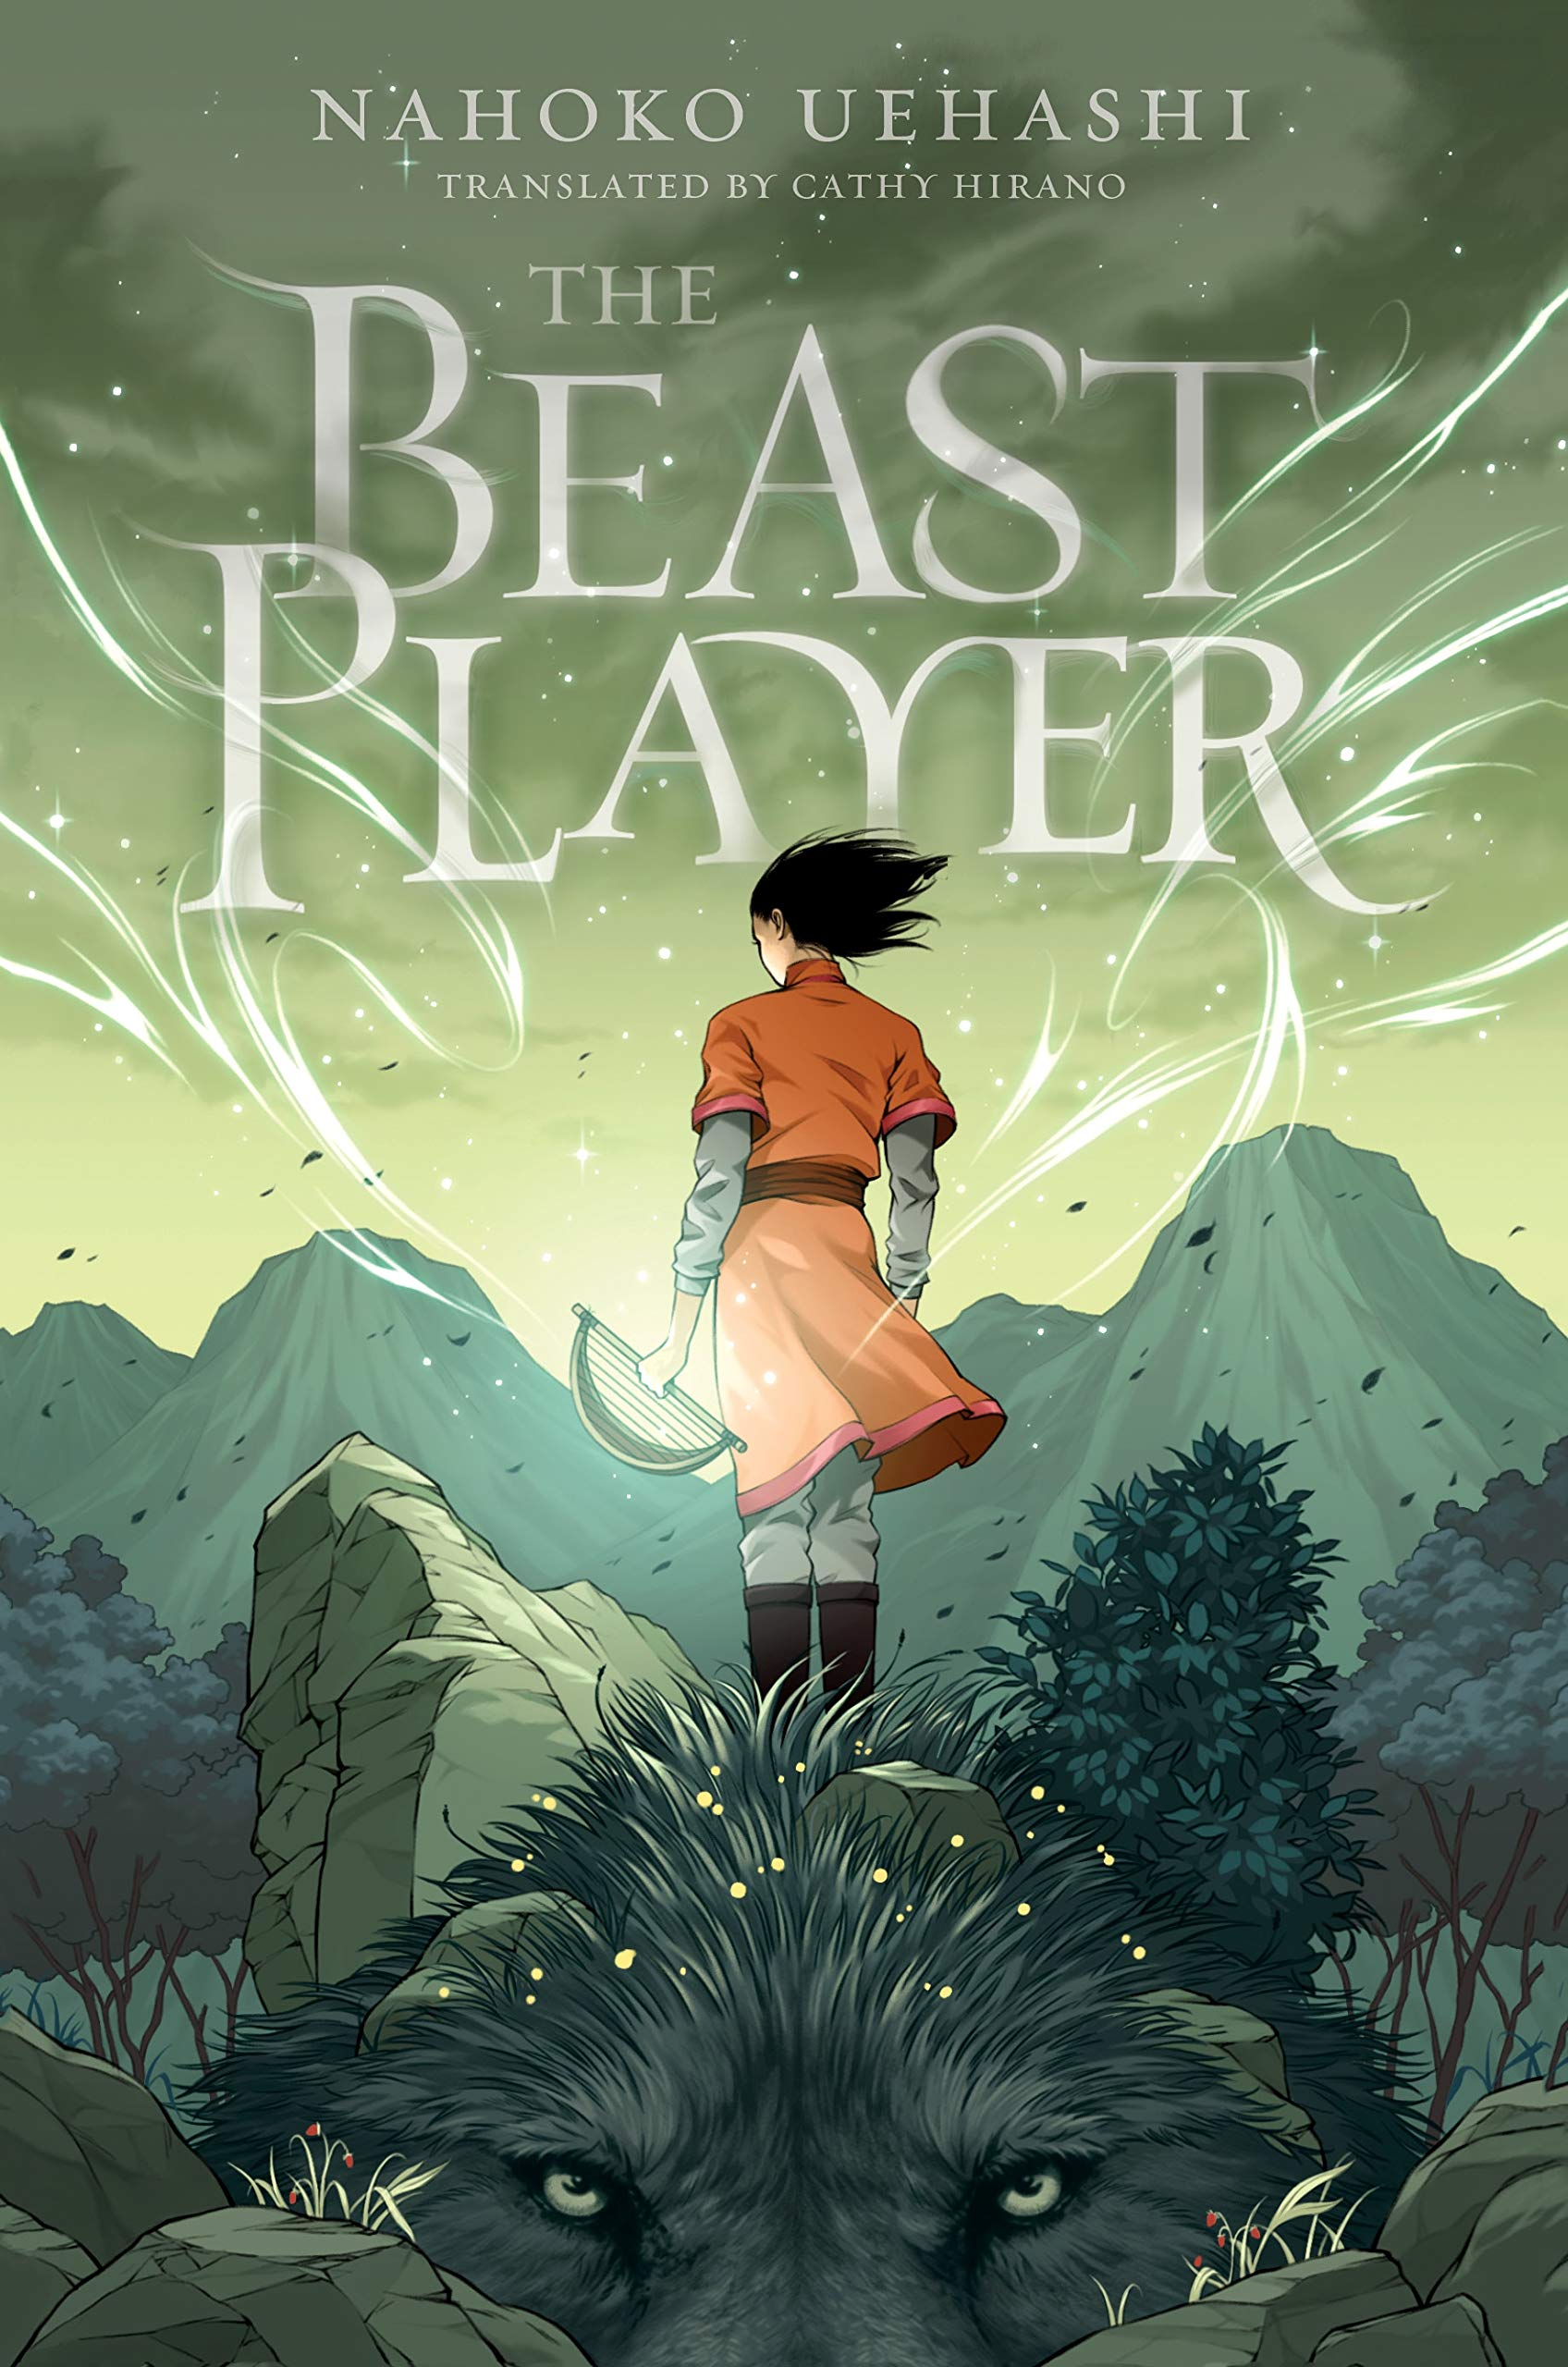 """Image result for The Beast Player by Nahoko Uehashi translated by Cathy Hirano"""""""